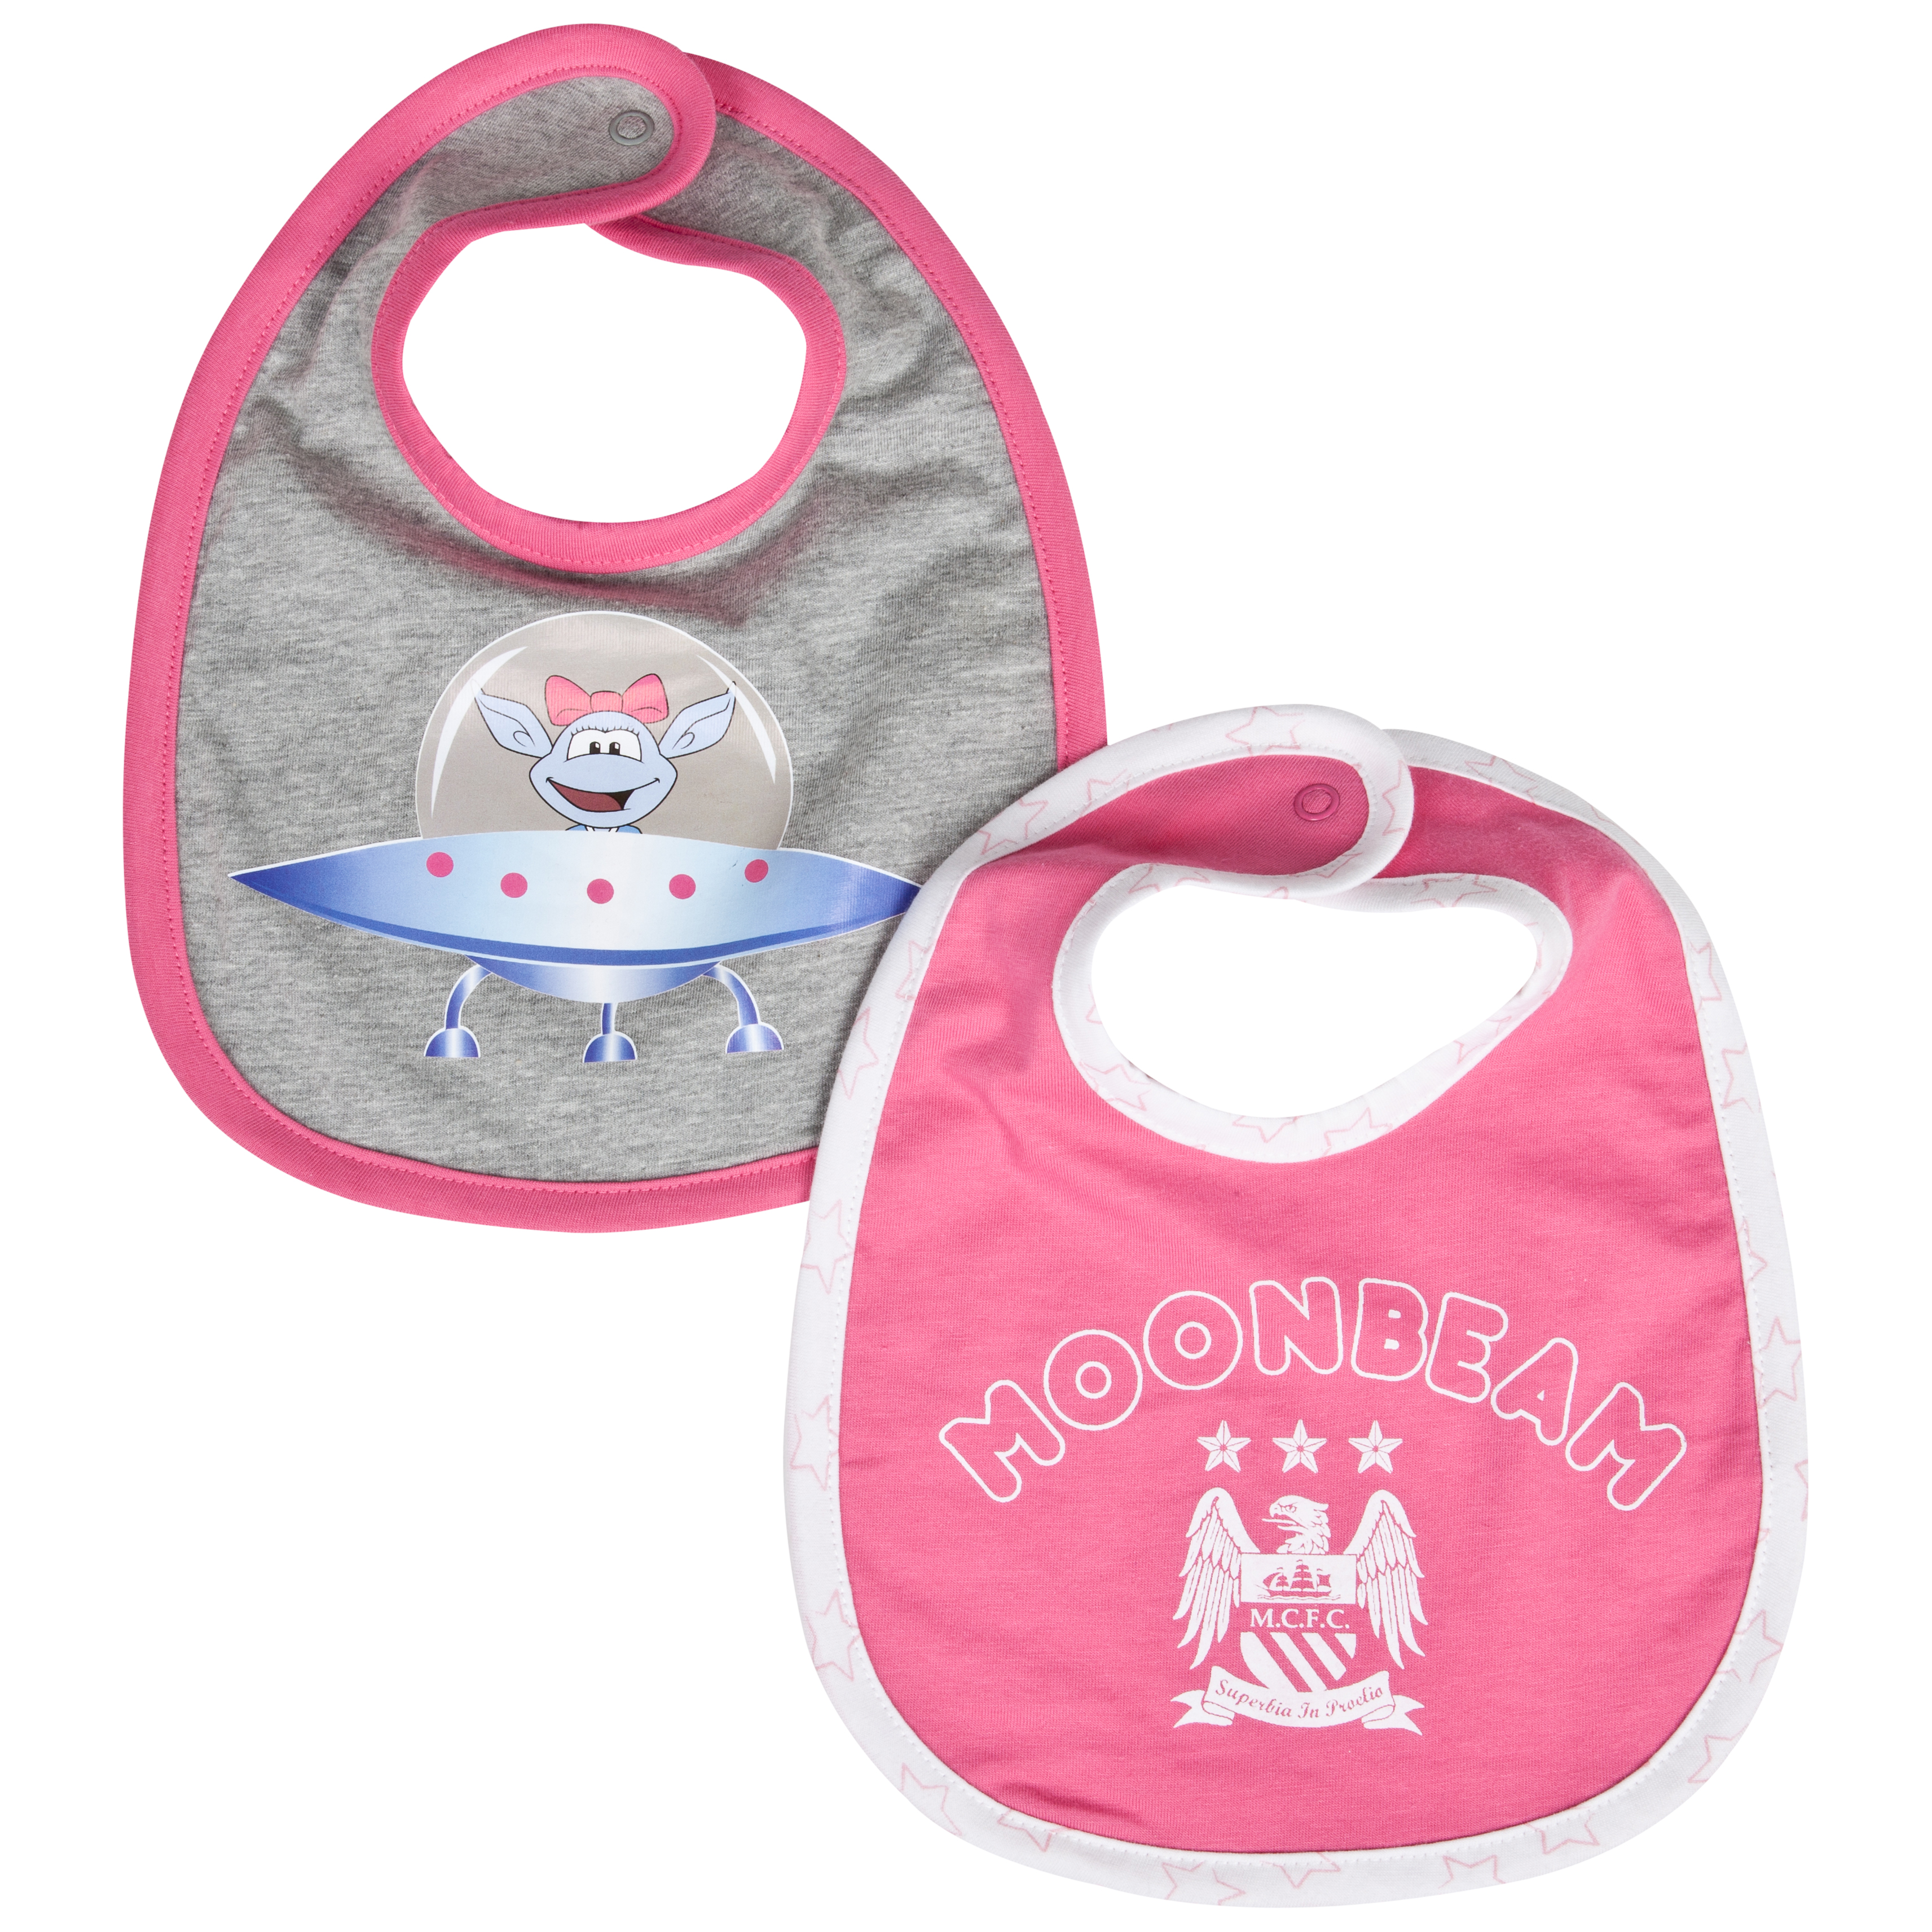 Manchester City Moonbeam Pack of 2 Bibs - Grey/Pink - Baby